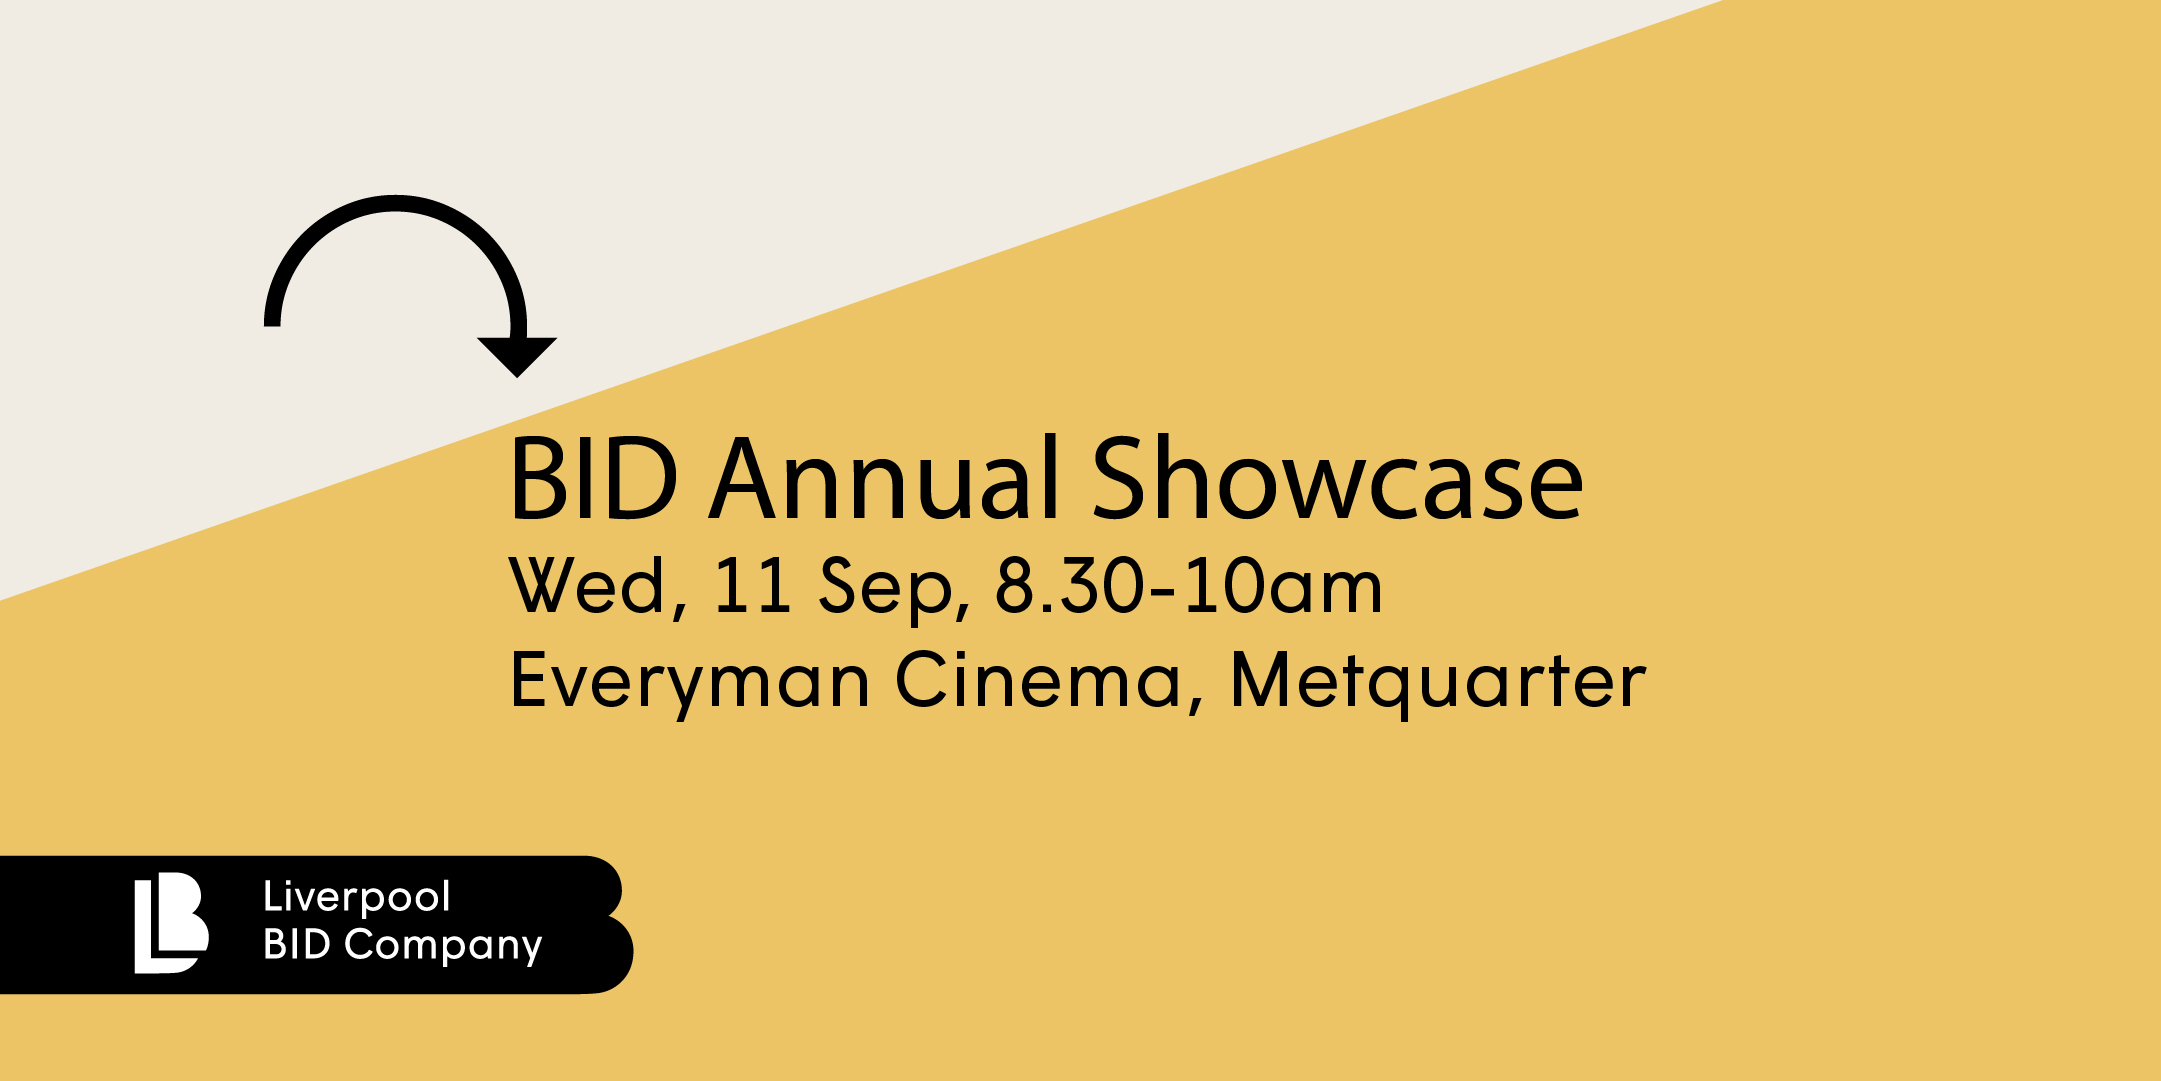 BID Annual Showcase - Eventbrite